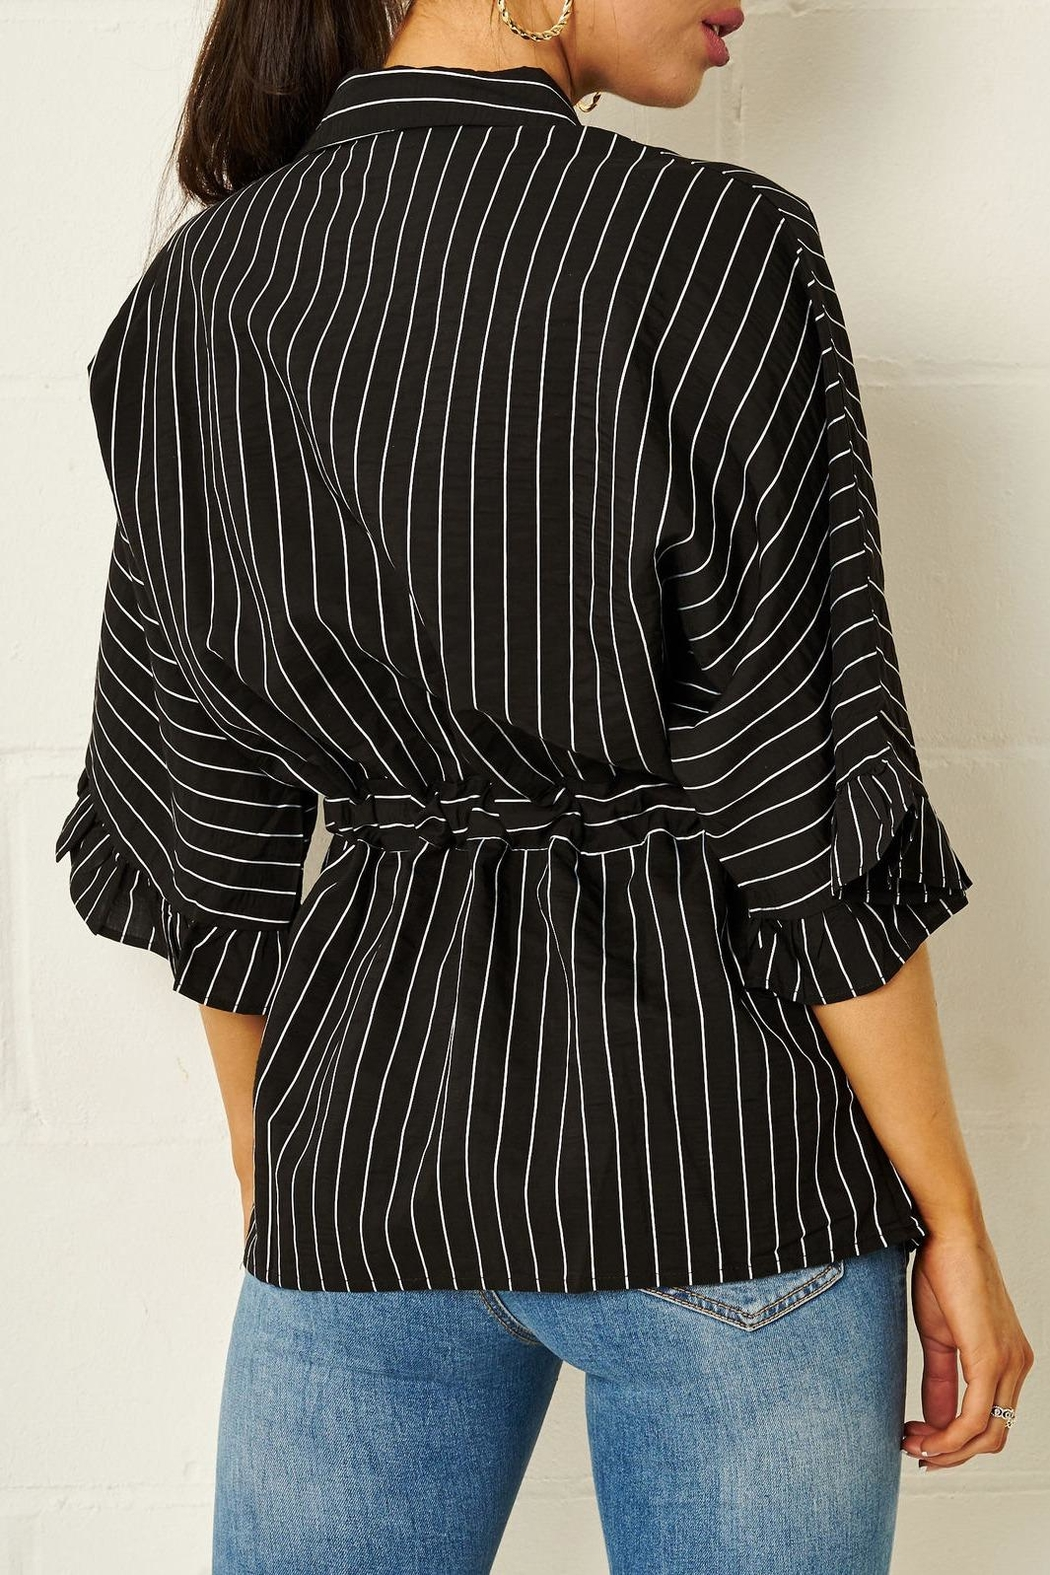 frontrow Monochrome Striped Shirt - Front Full Image